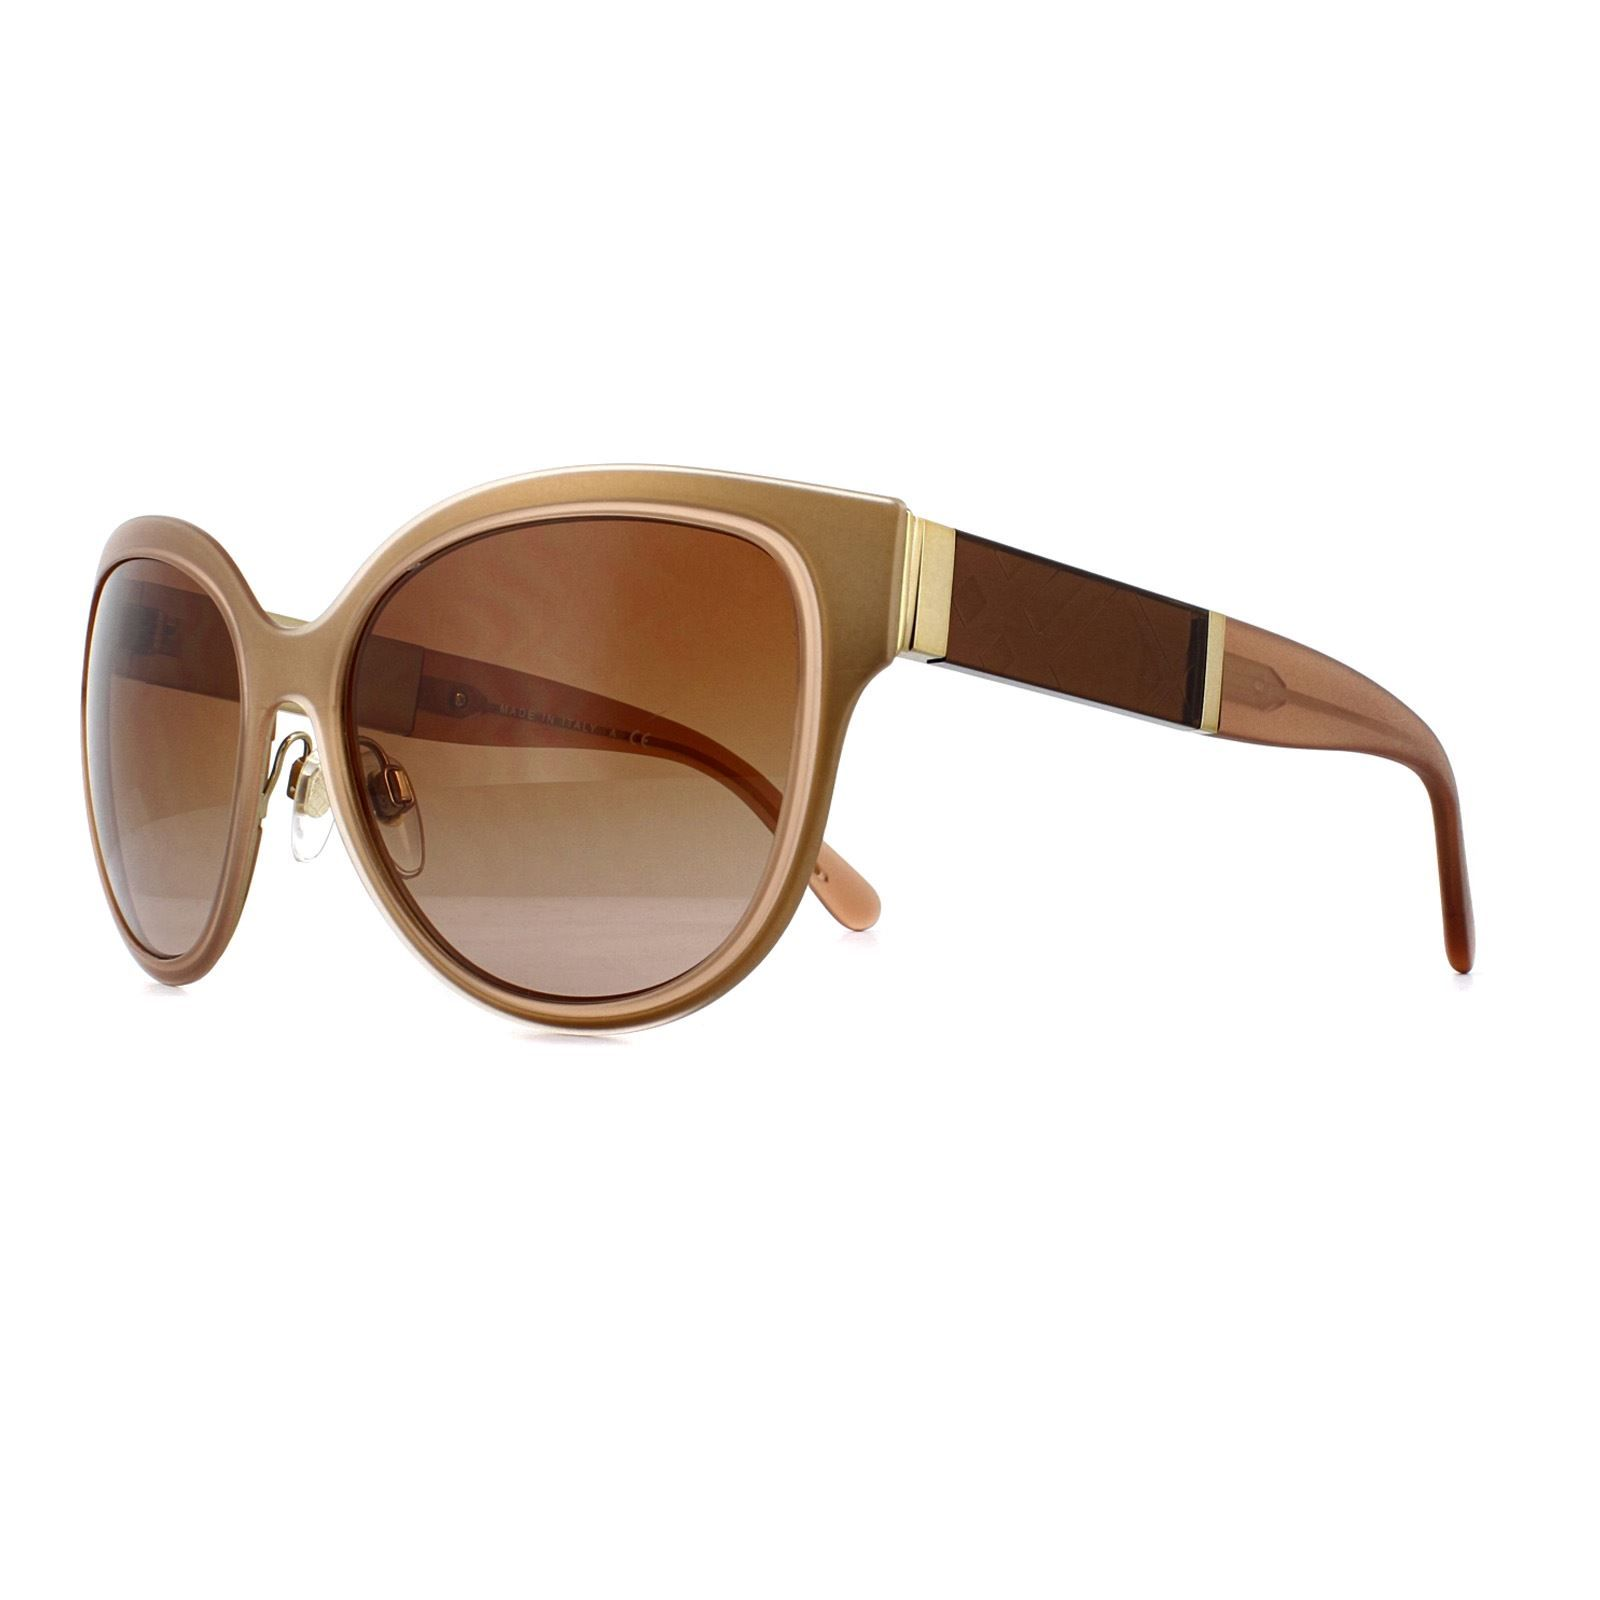 Burberry Sunglasses BE 3087 121813 Light Gold Brown Gradient